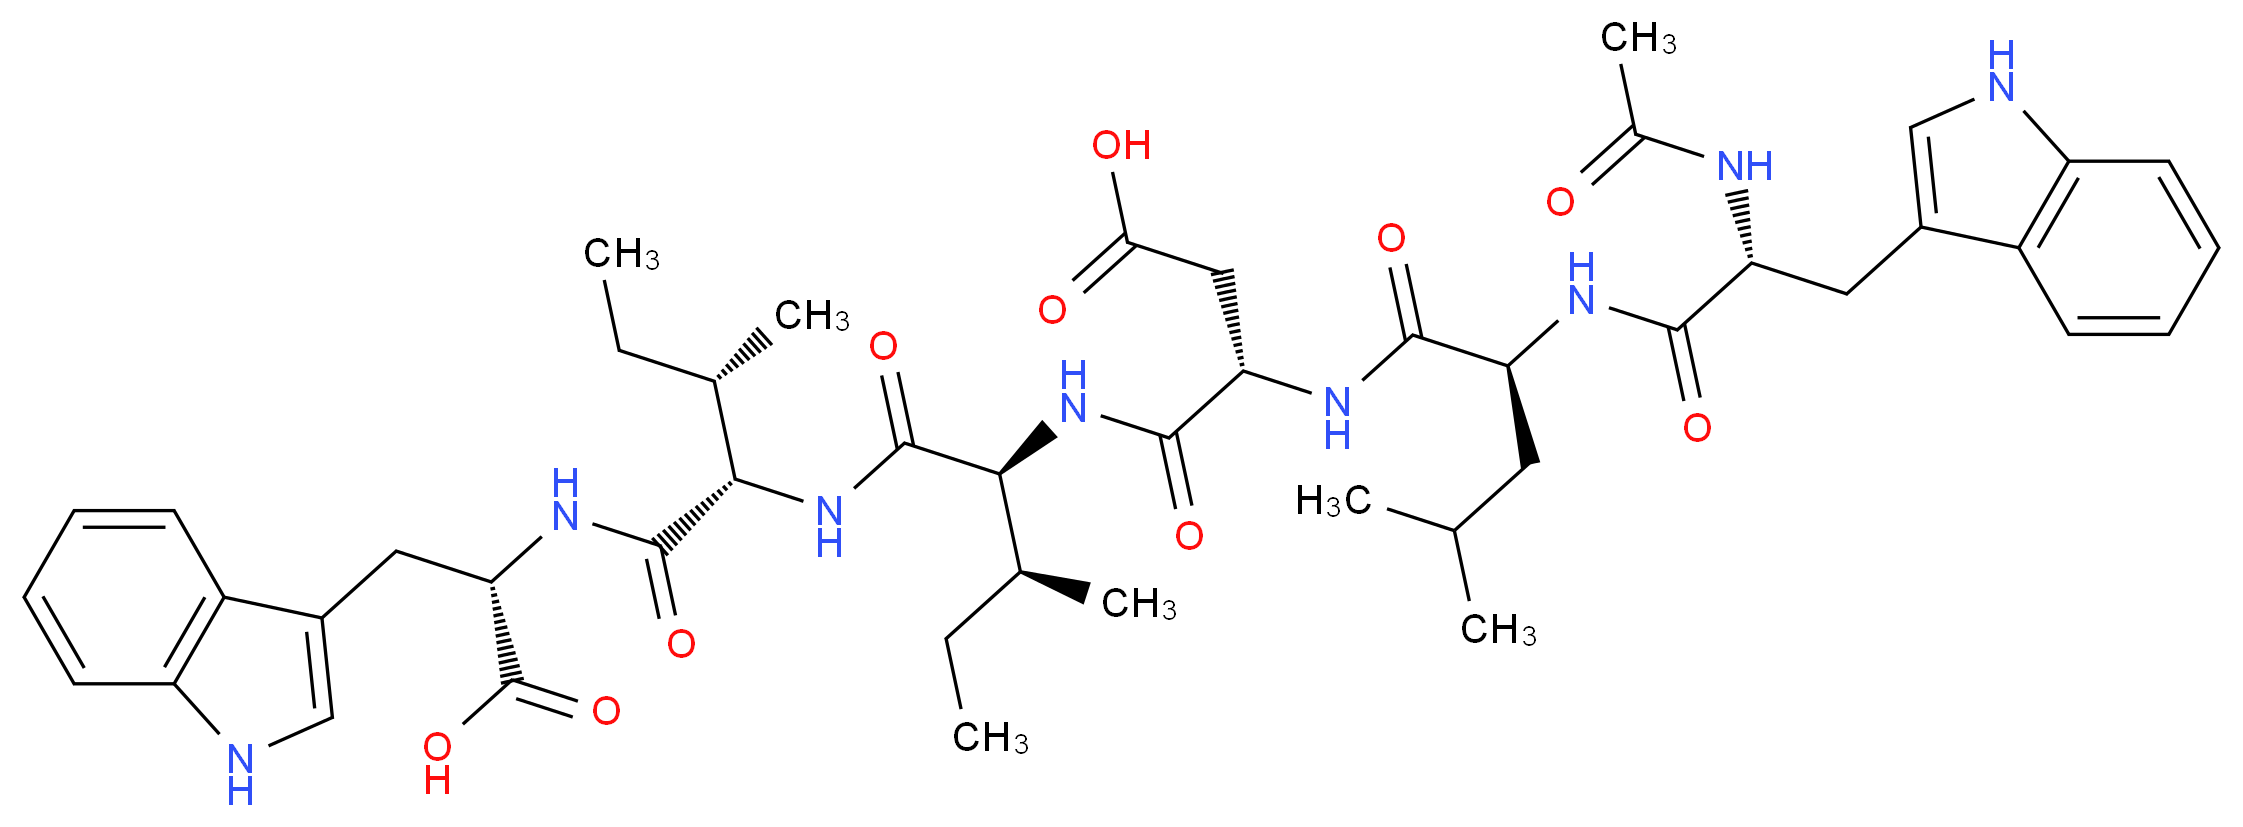 (3S)-3-{[(1S,2S)-1-{[(1S,2S)-1-{[(1S)-1-carboxy-2-(1H-indol-3-yl)ethyl]carbamoyl}-2-methylbutyl]carbamoyl}-2-methylbutyl]carbamoyl}-3-[(2S)-2-[(2R)-2-acetamido-3-(1H-indol-3-yl)propanamido]-4-methylpentanamido]propanoic acid_分子结构_CAS_143037-33-6